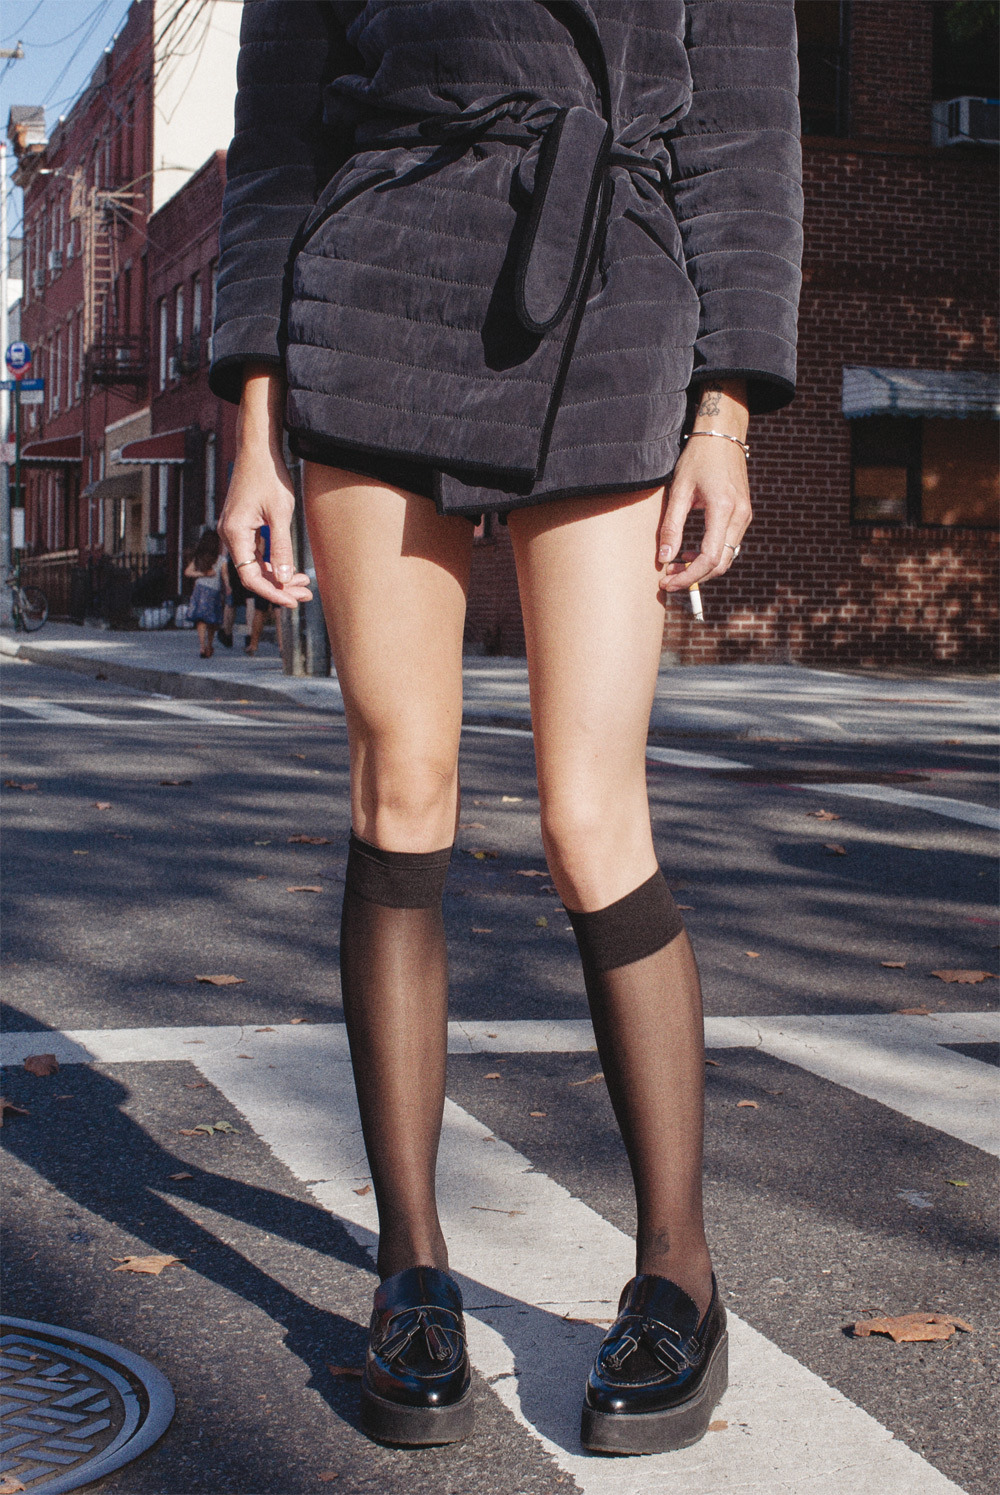 Vice: She's Got Legs: knee-highs.jpg